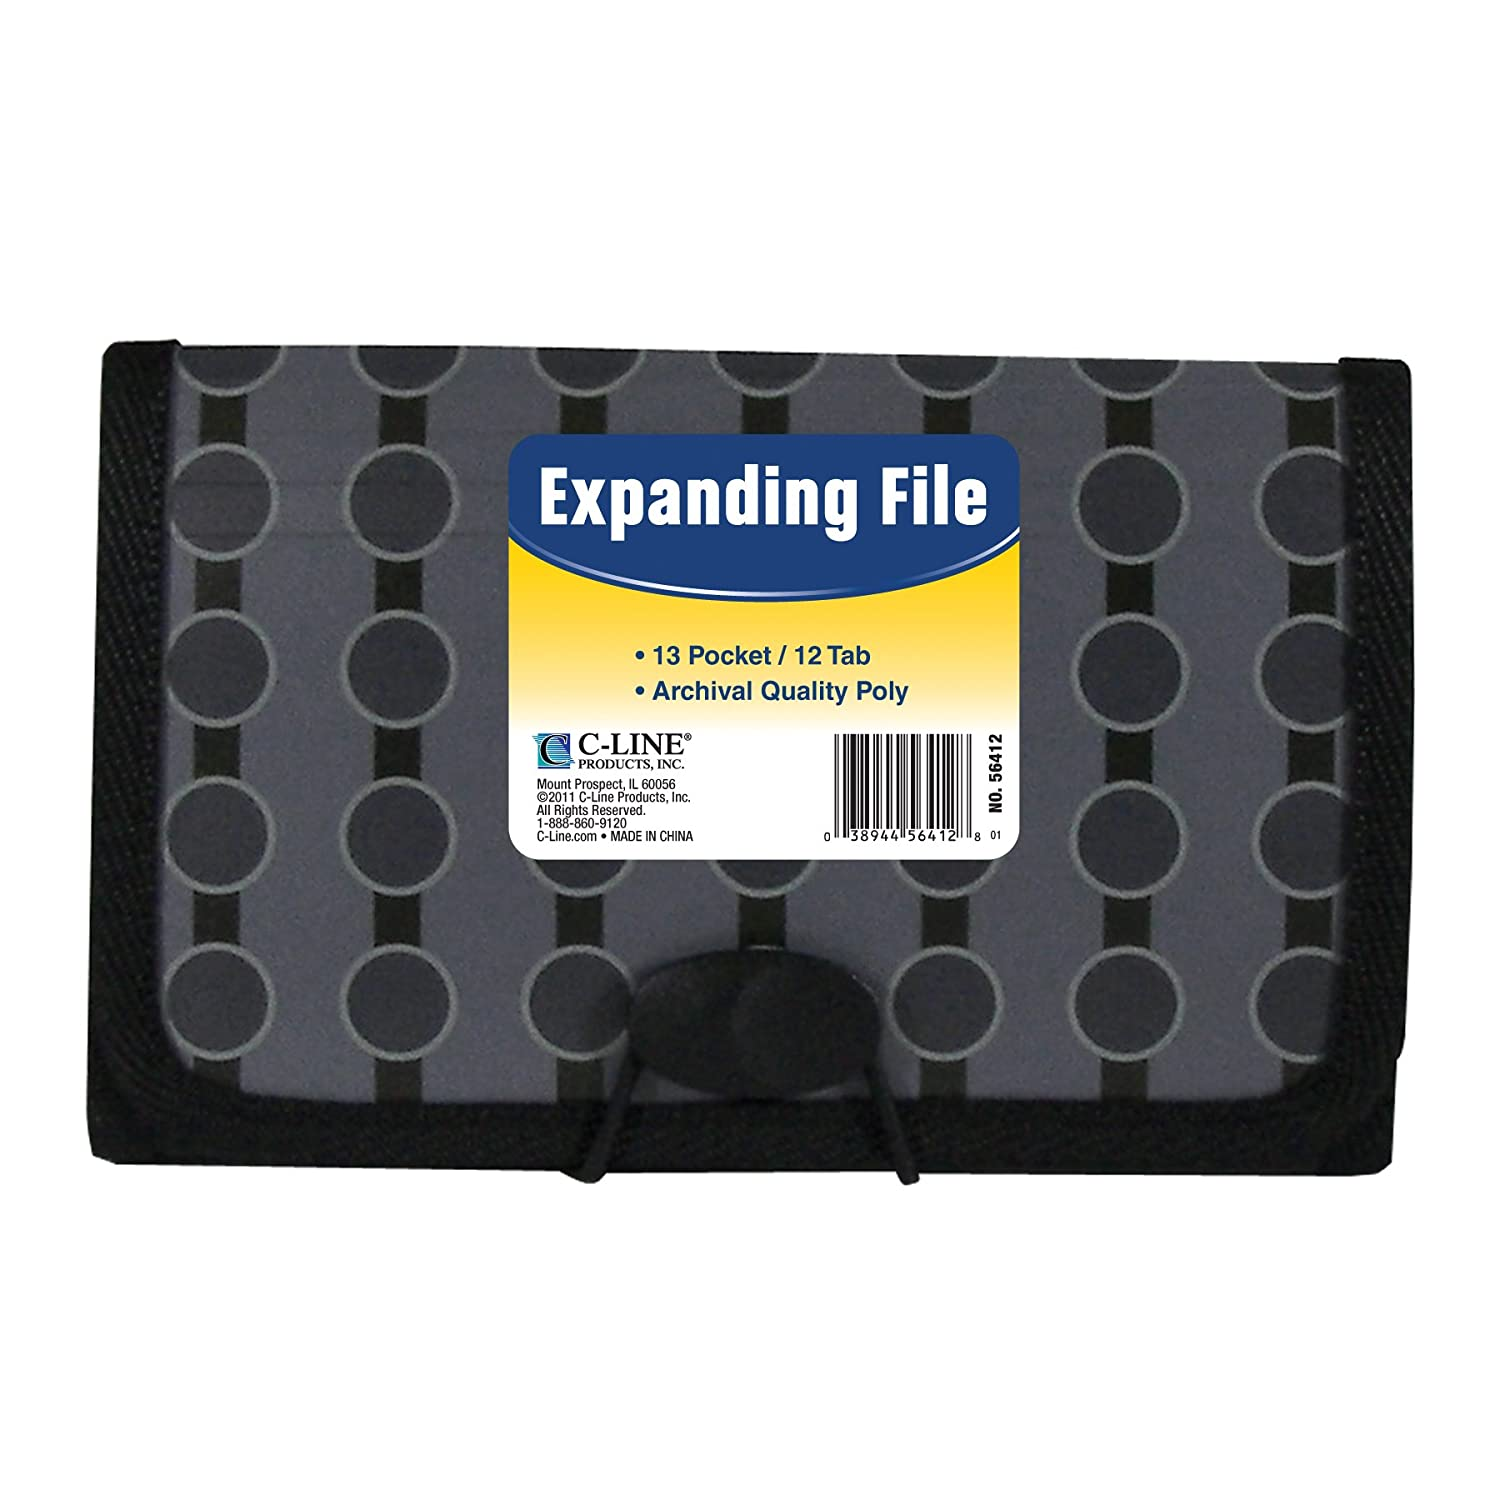 C-Line 13-Pocket Expanding File, Coupon Size, Includes Tabs, 1 File, Fashion Circle Series, Black/Gray (56412) C-Line Products Inc.